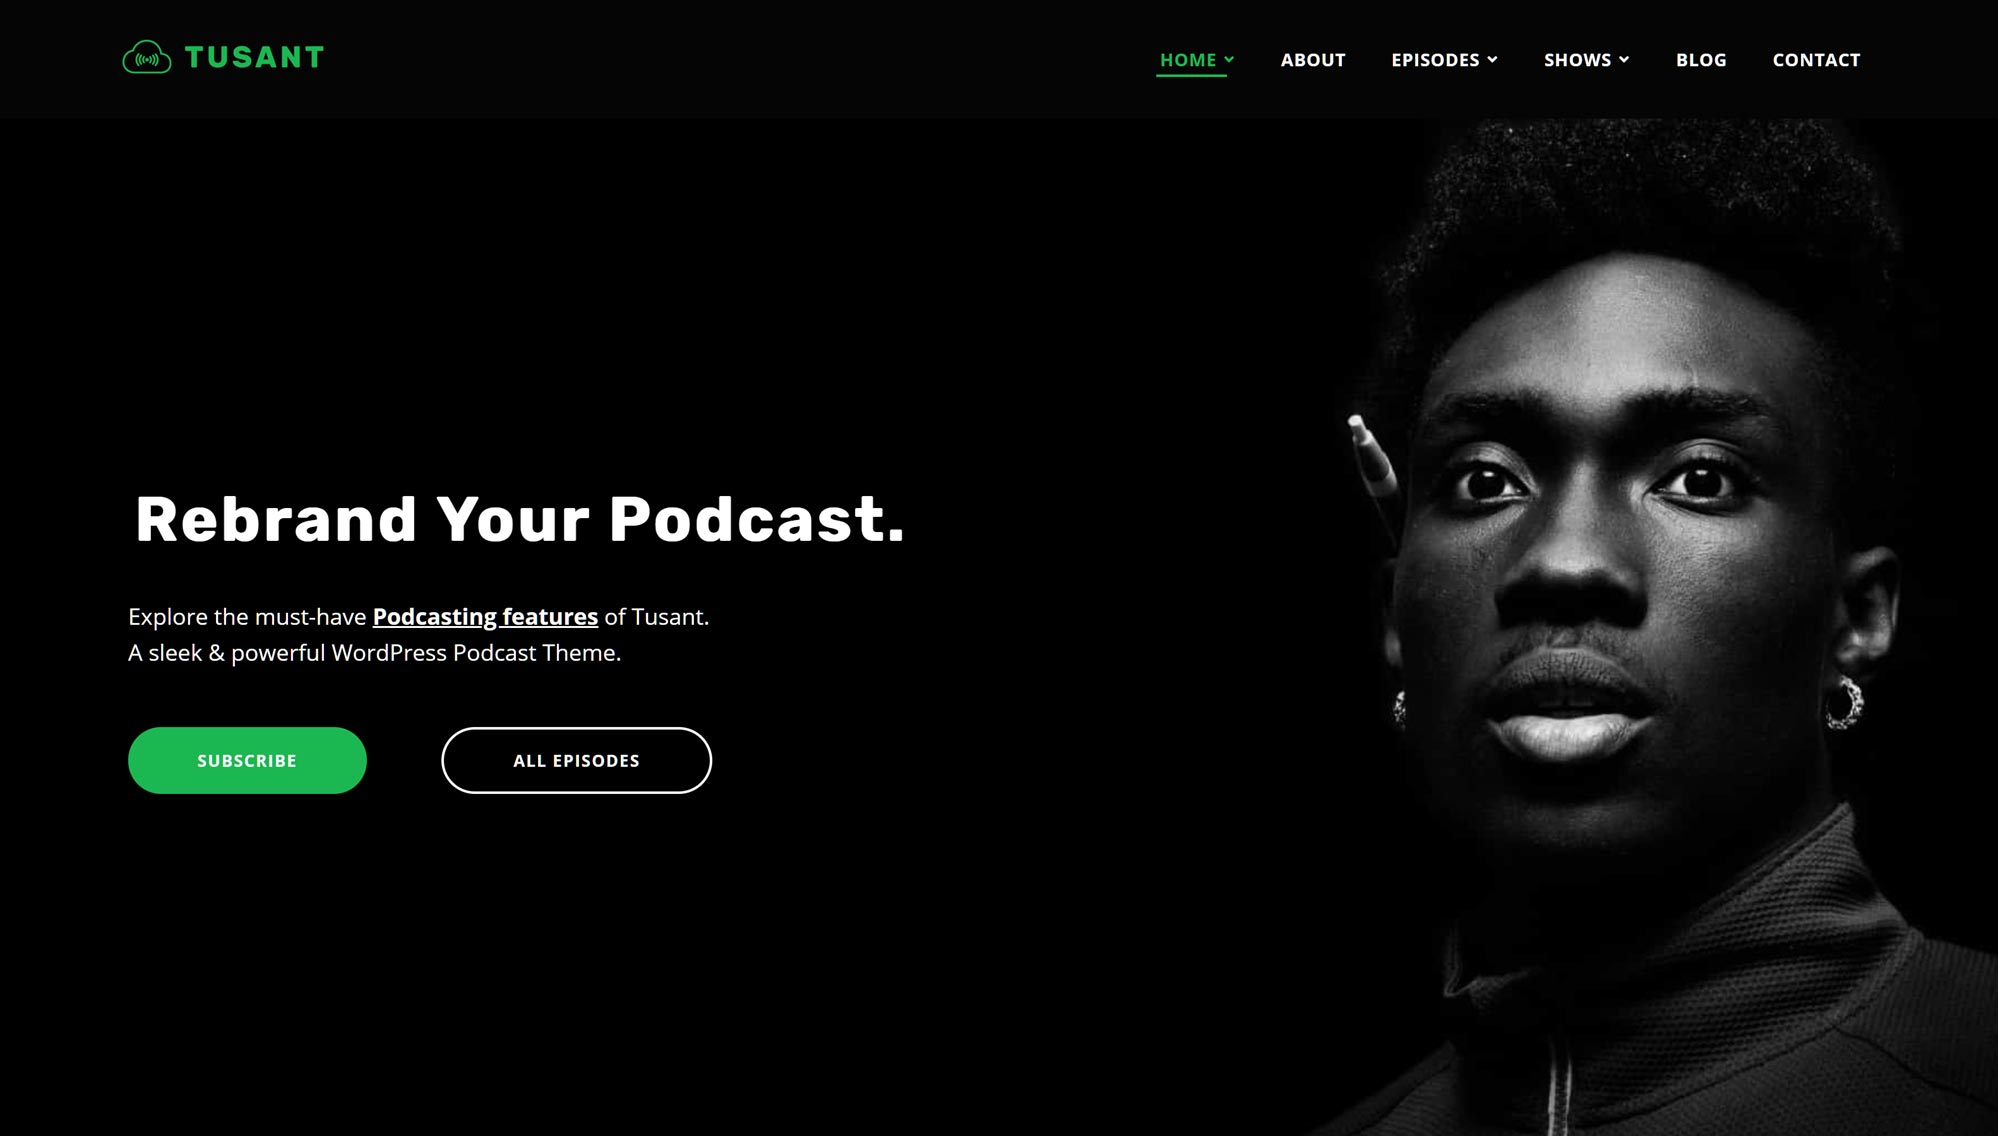 Tusant podcast website with Anchor